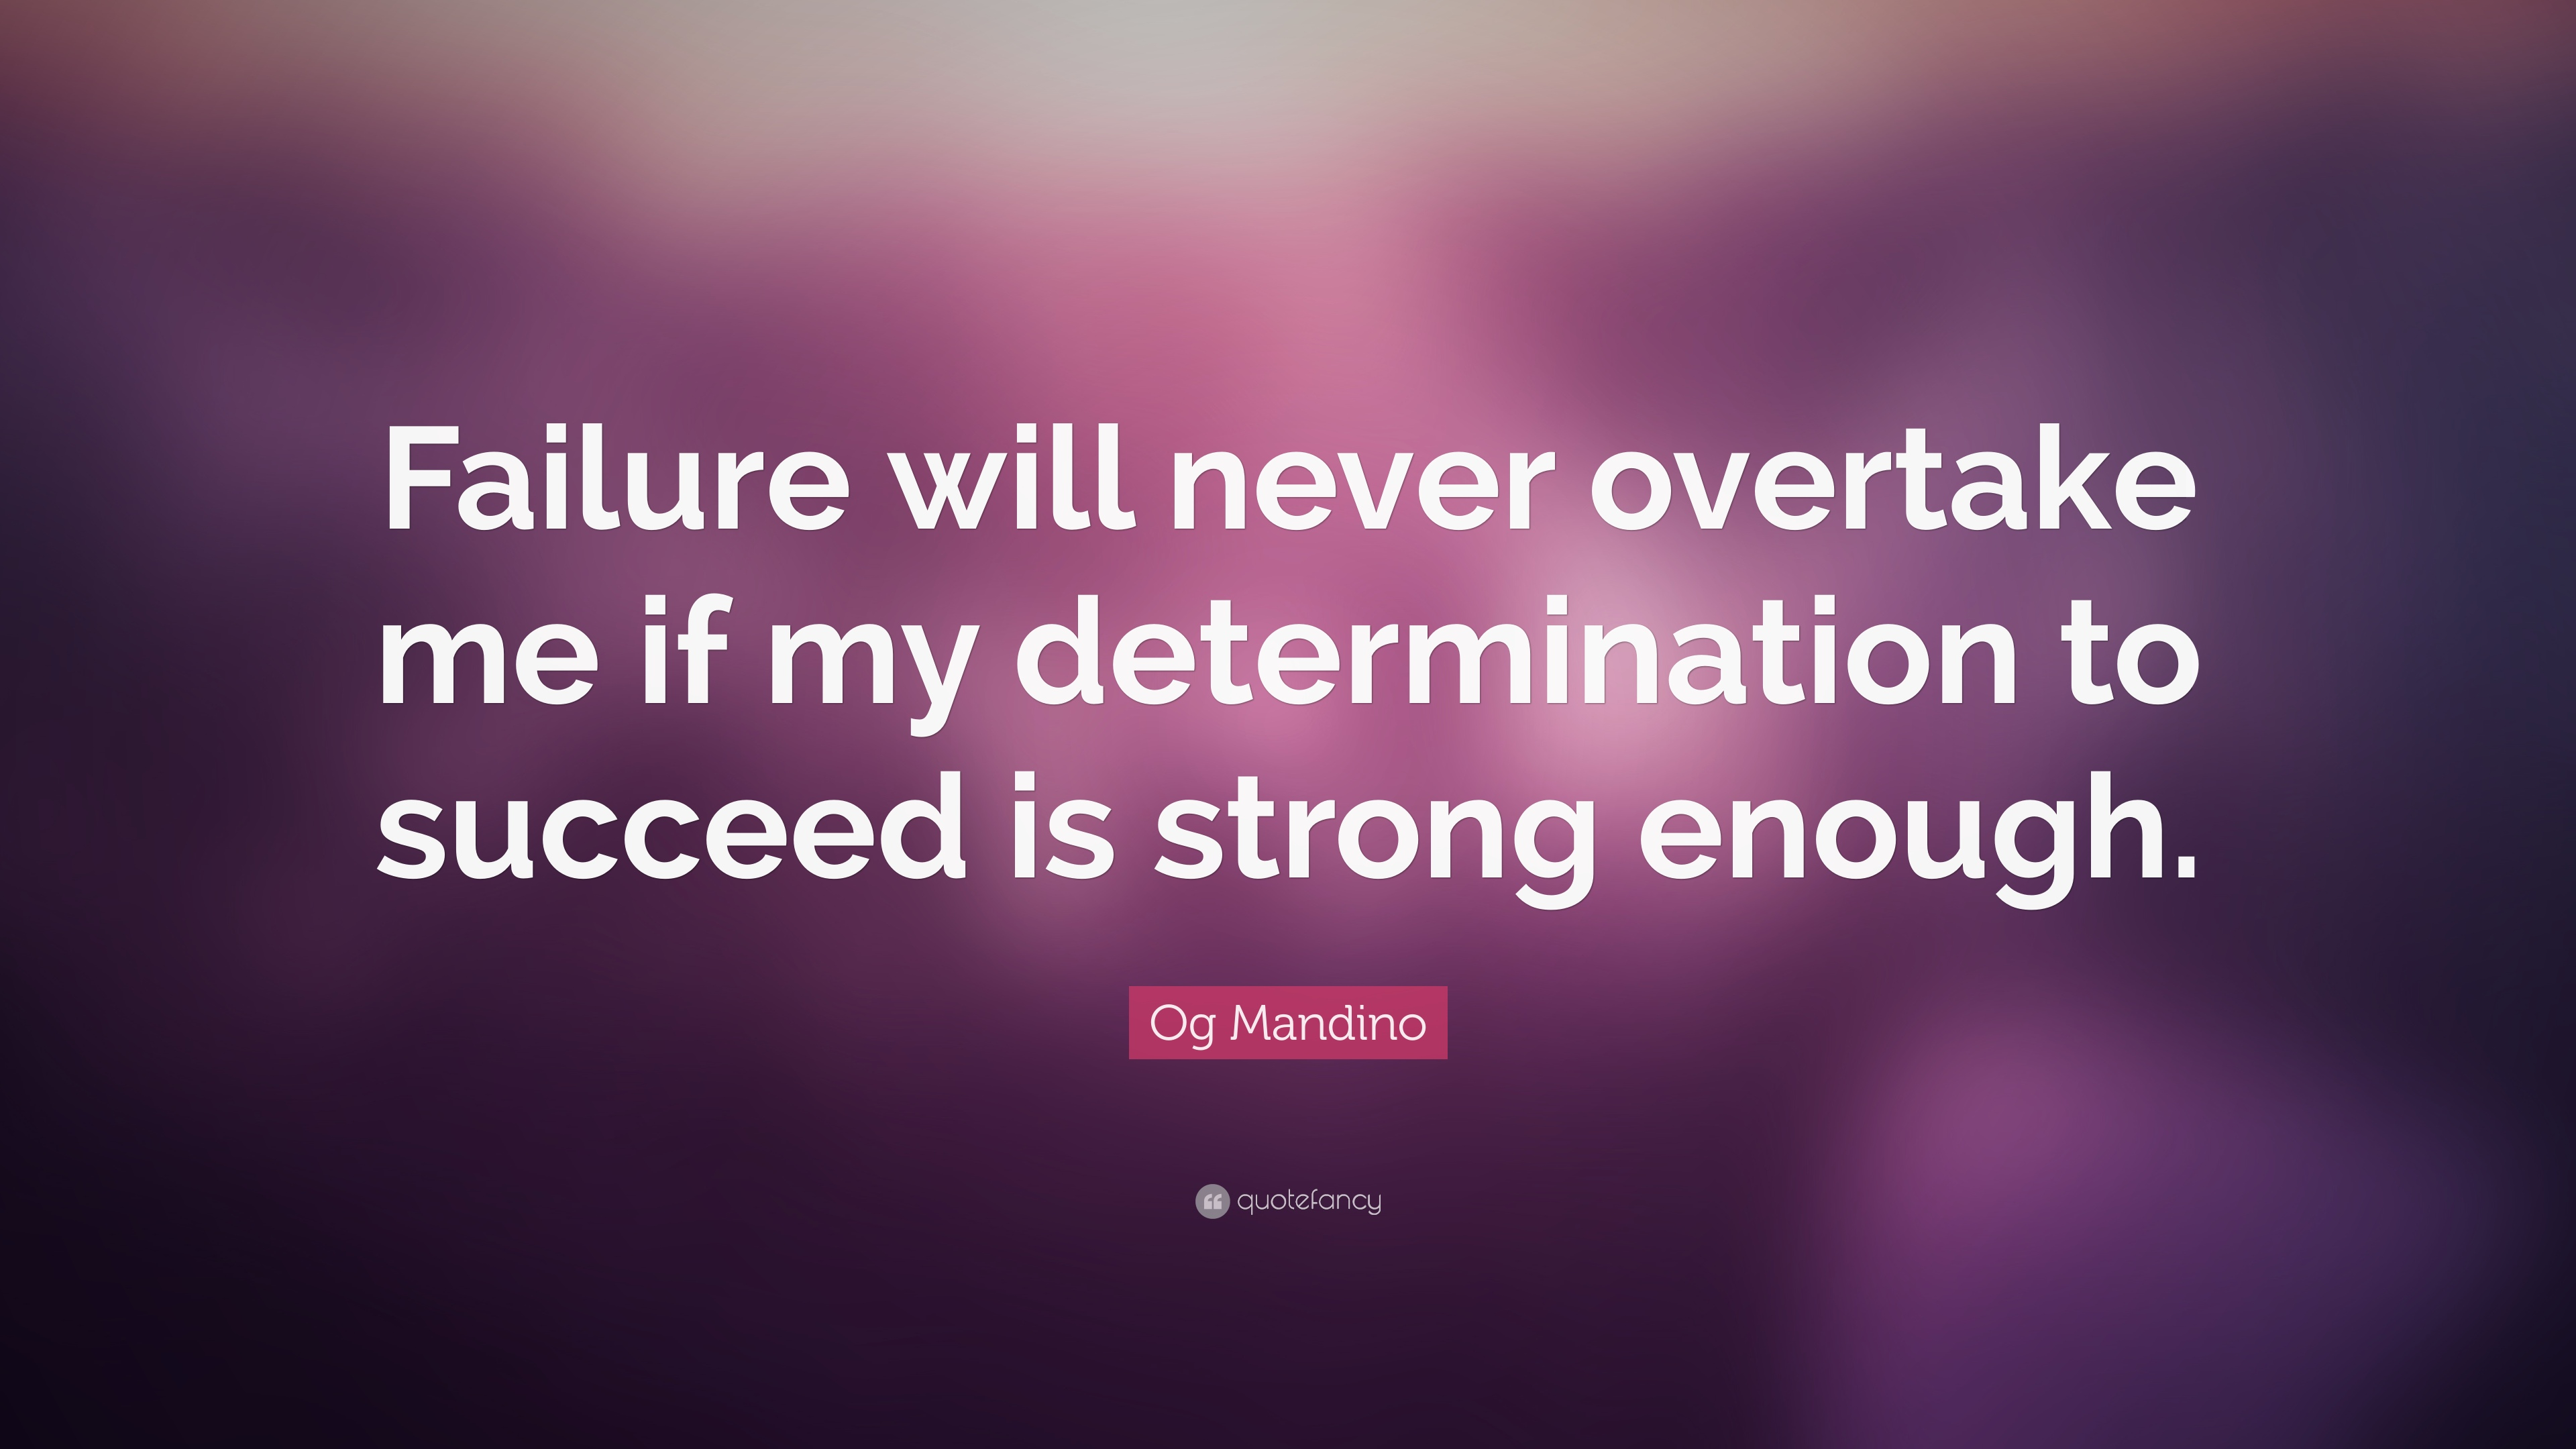 my determination to succeed Failure will never overtake me if my determination to succeed is strong  enough failure will never overtake me if my determination to succeed is strong.